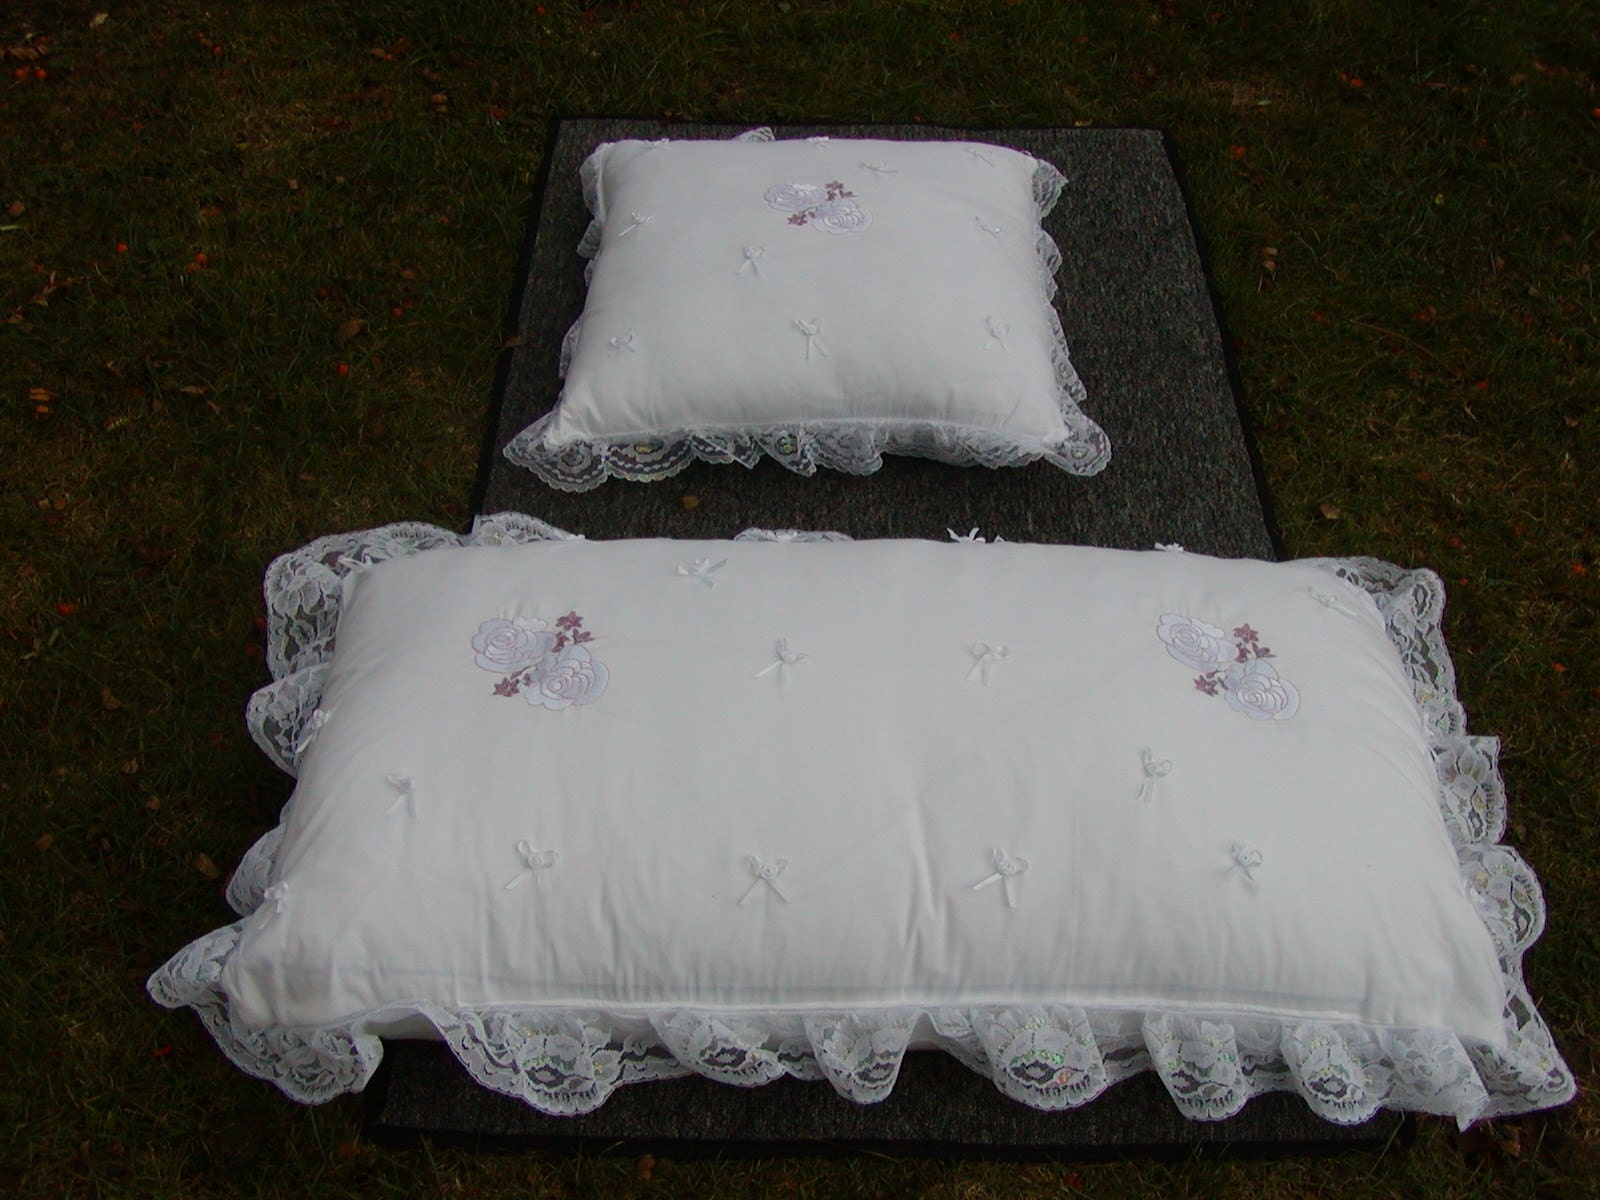 Wedding Kneeling Pillows Need A Pillow To Kneel On During The